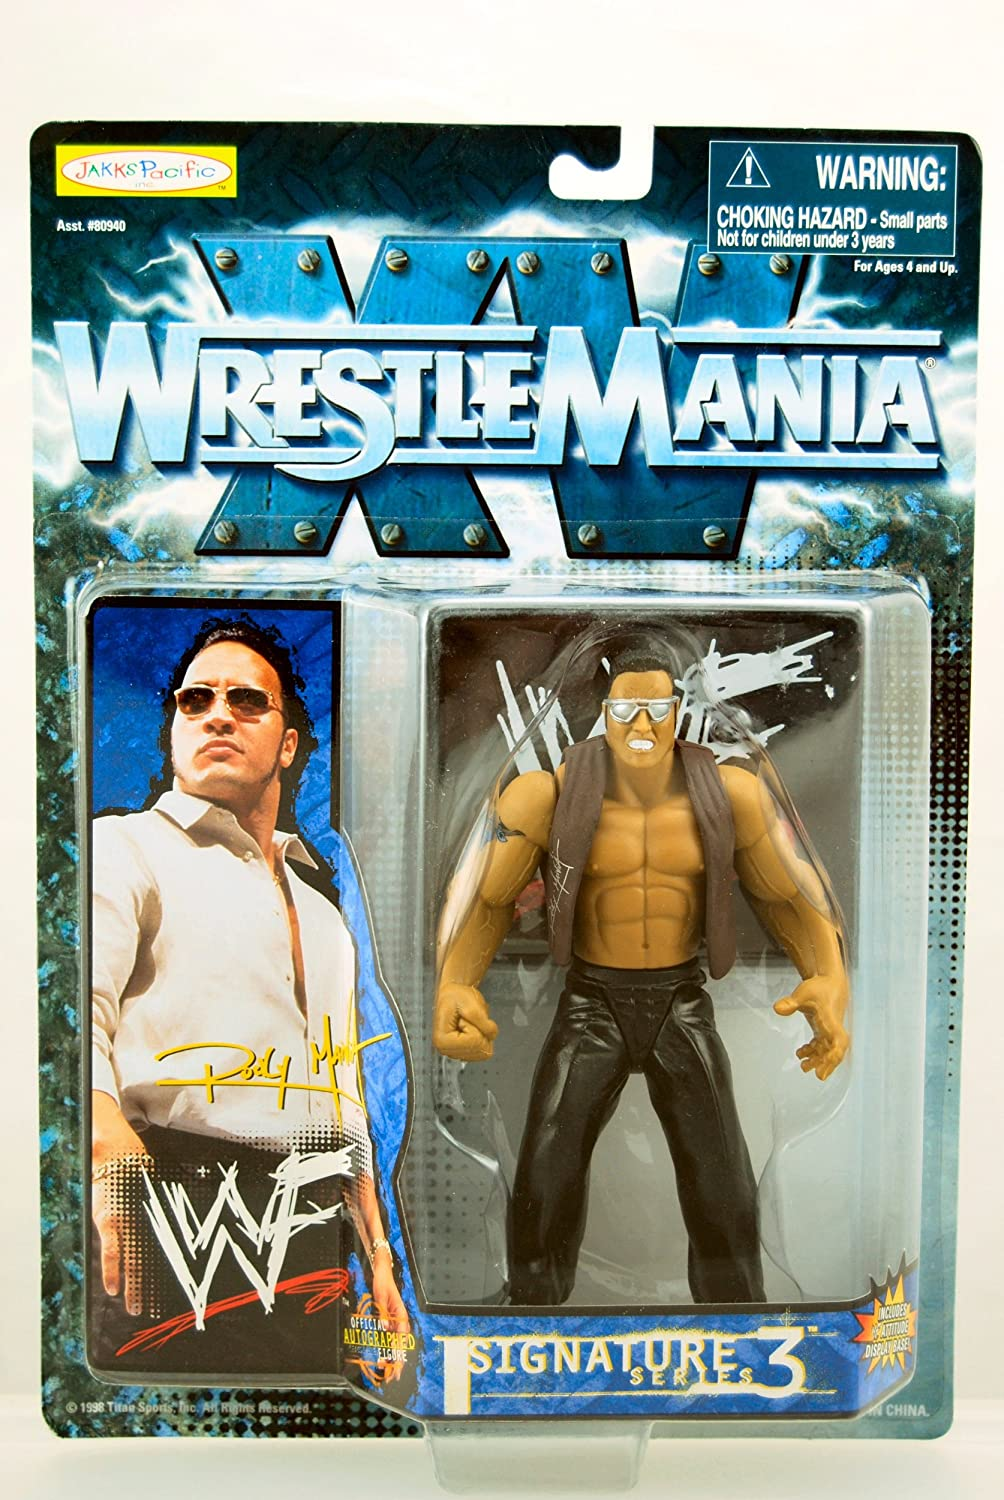 WWF  Wrestle Mania XV  1998  Signature Series 3  Rocky Maivia (The Rock) Action Figure  Display Base  Jakks  Limited Edition  Mint  Collectible